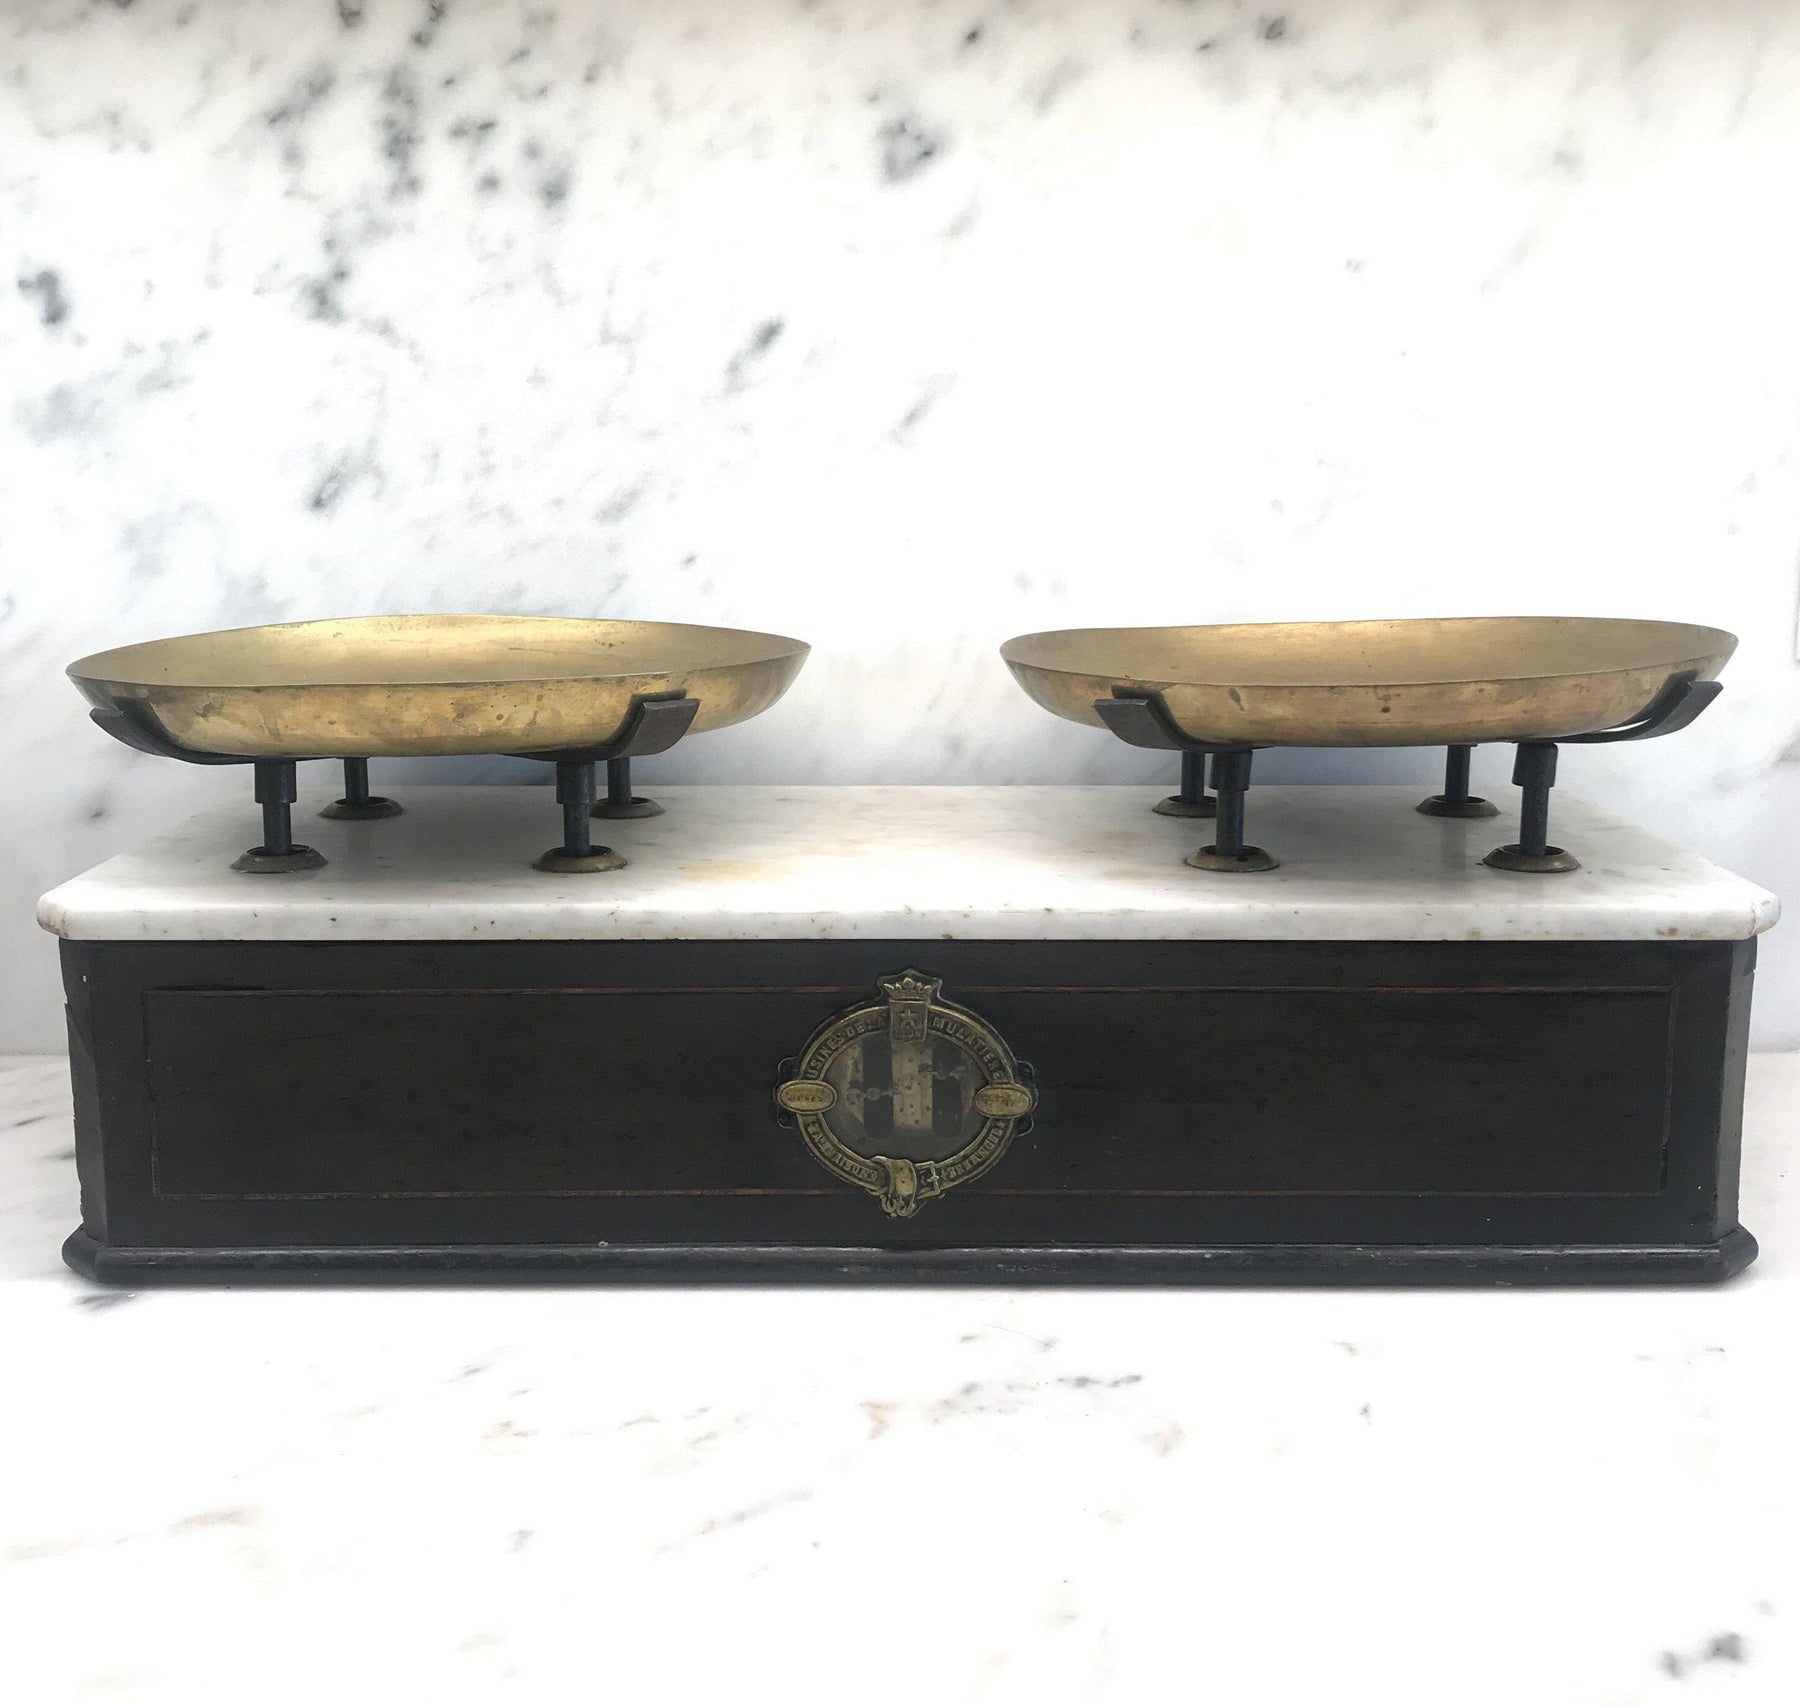 Antique French Napoleon III Marble Top Bakery Scale 1870